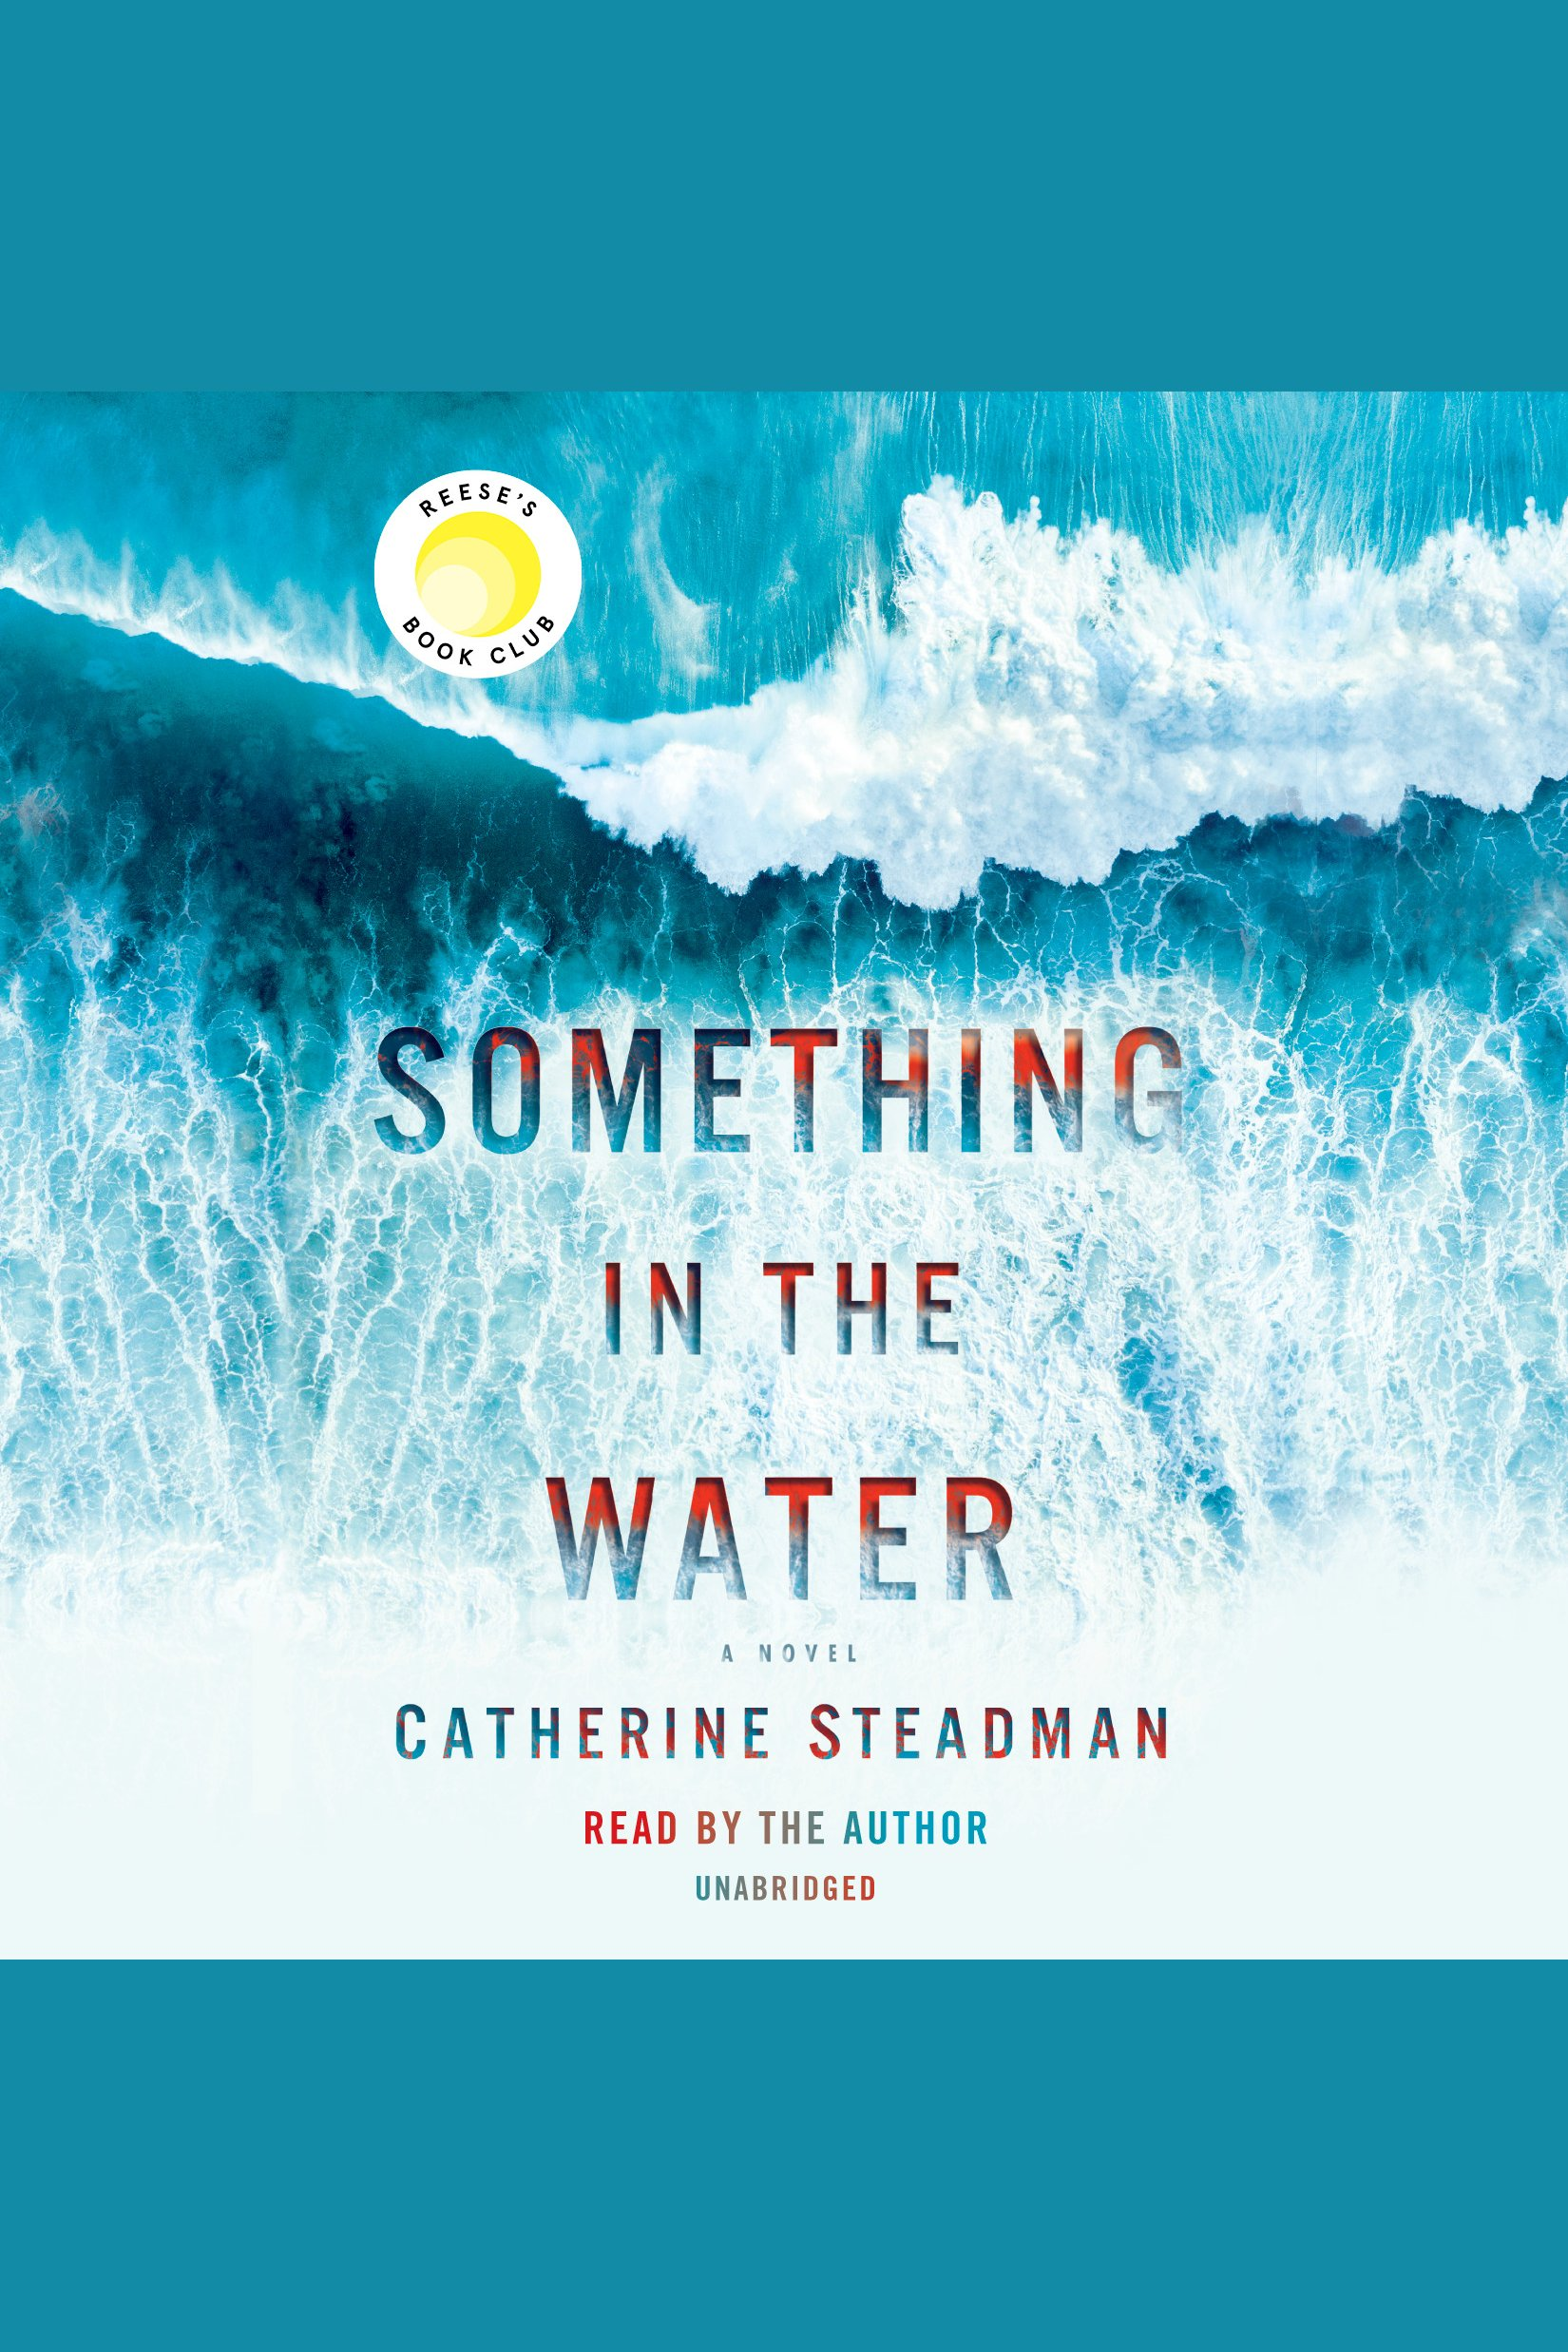 Something in the water cover image